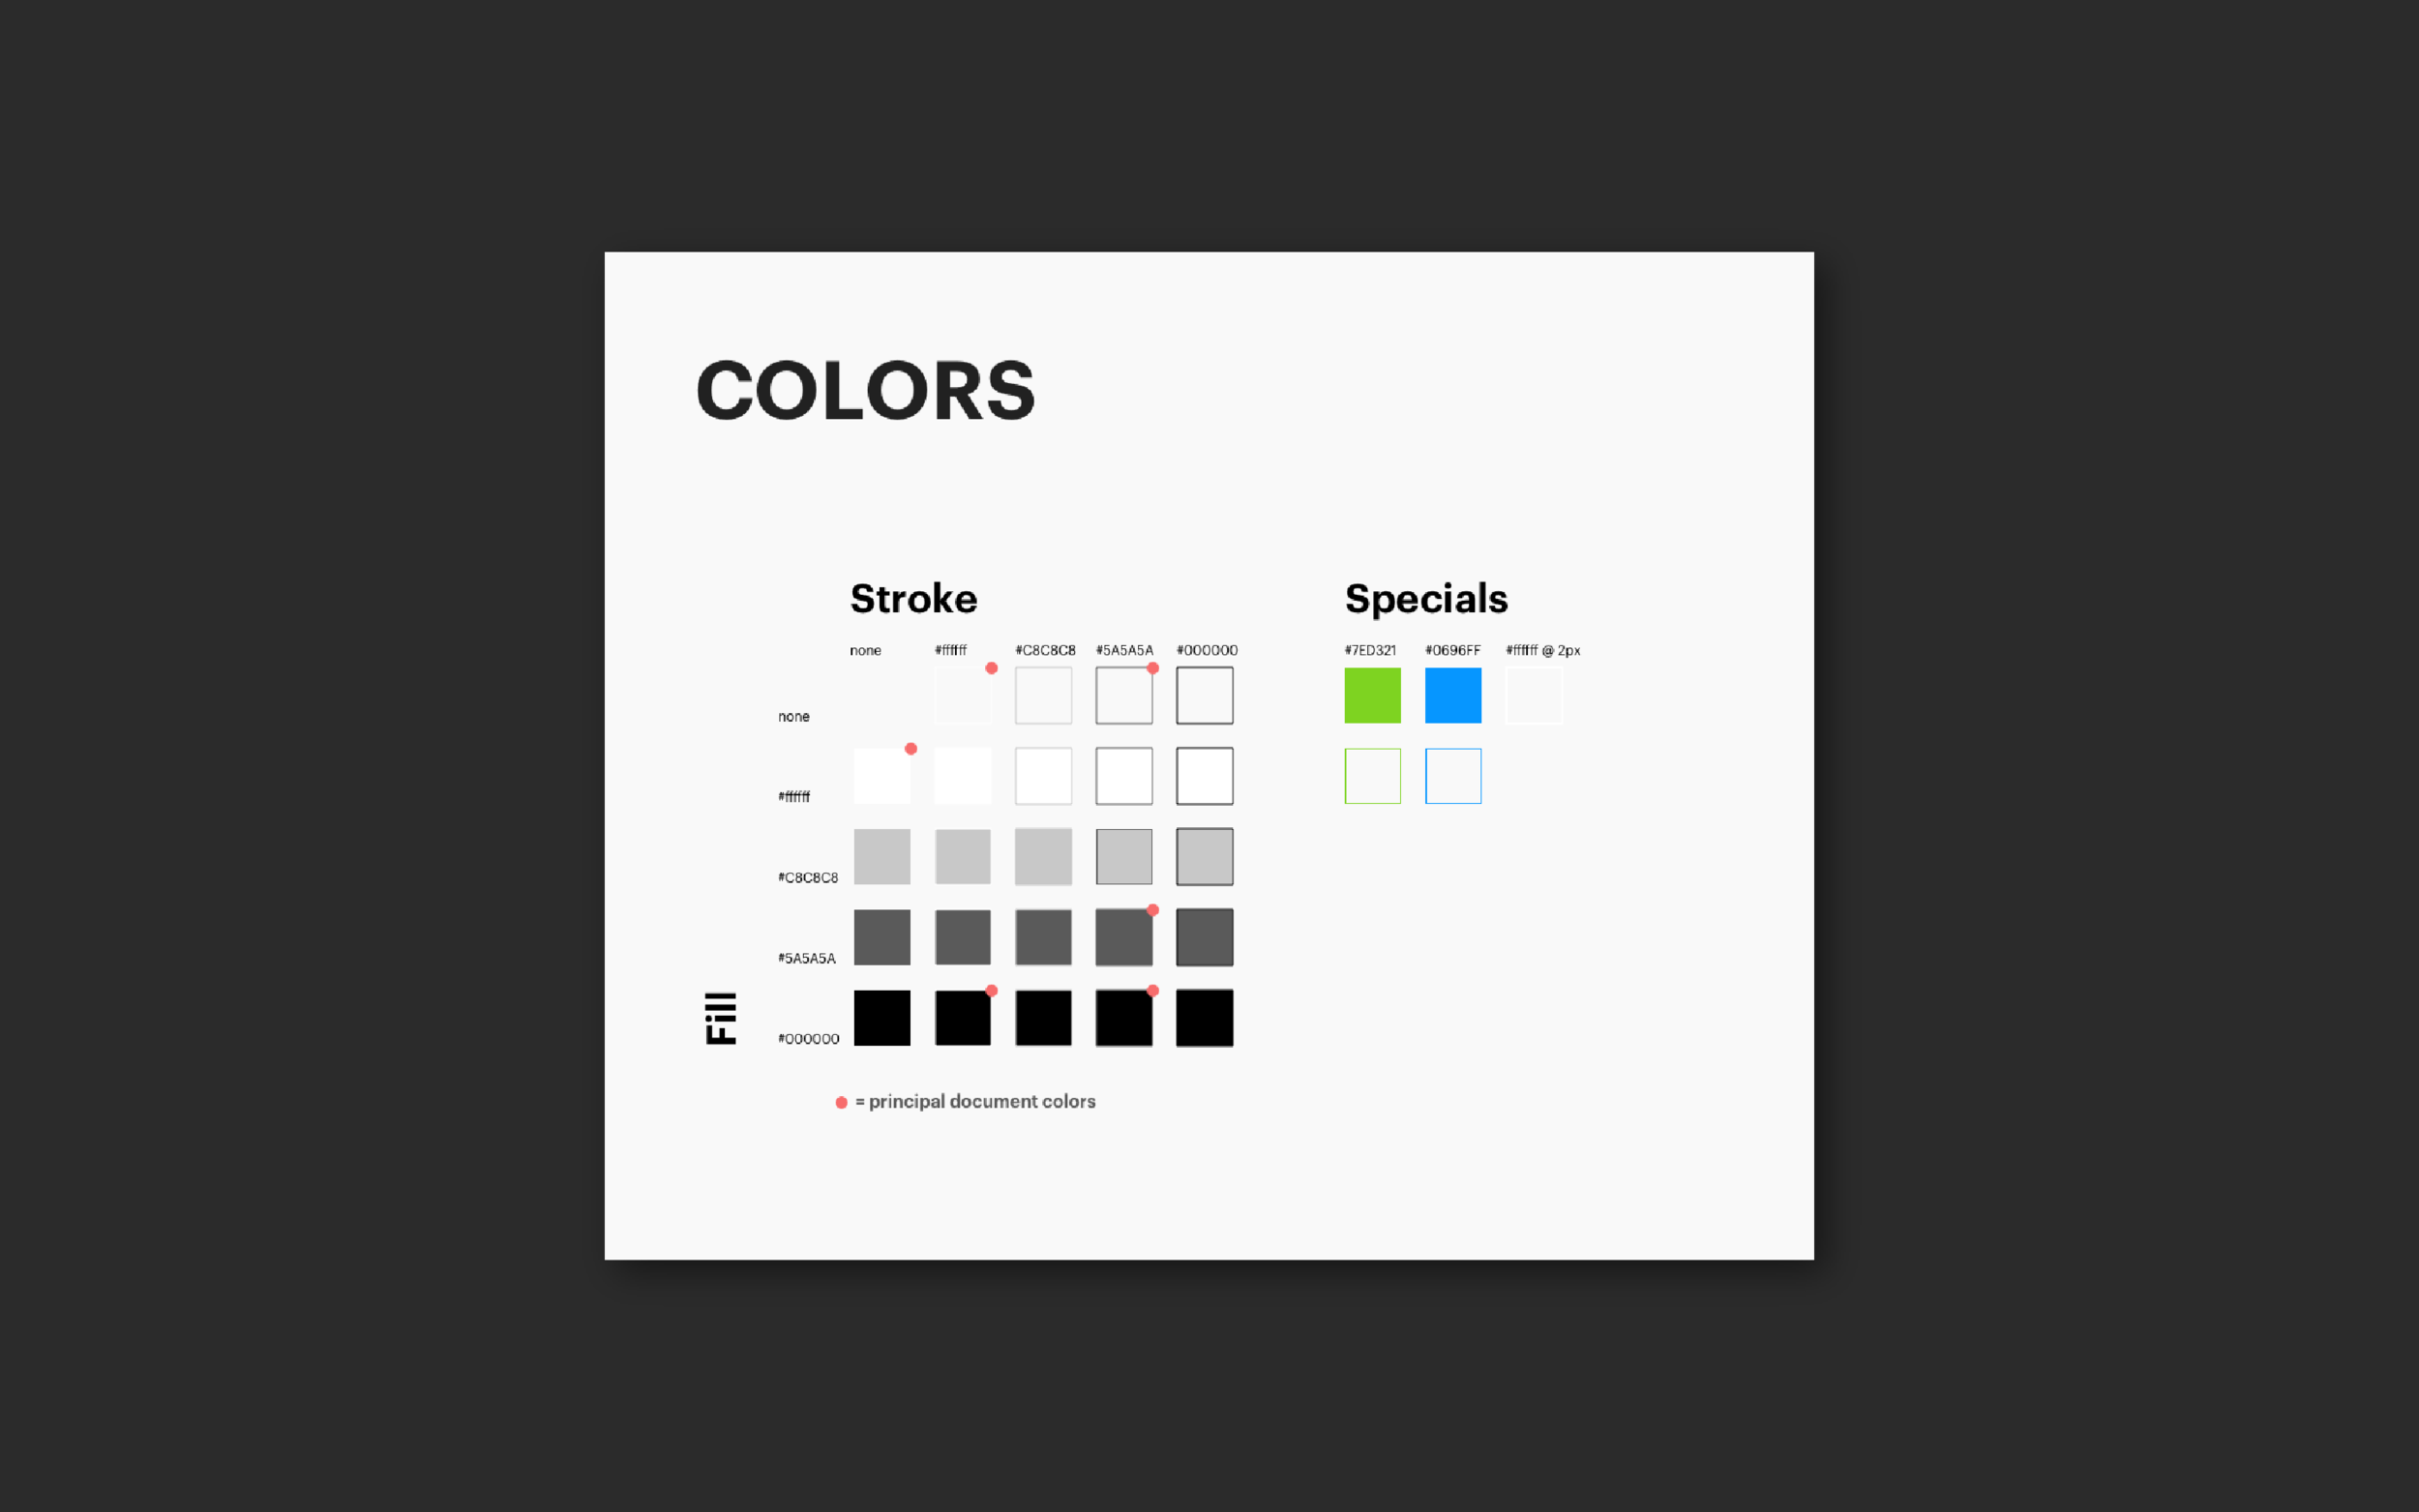 Basic document colors and combinations—these are representations of the colors and styles that will be in the later design symbols.